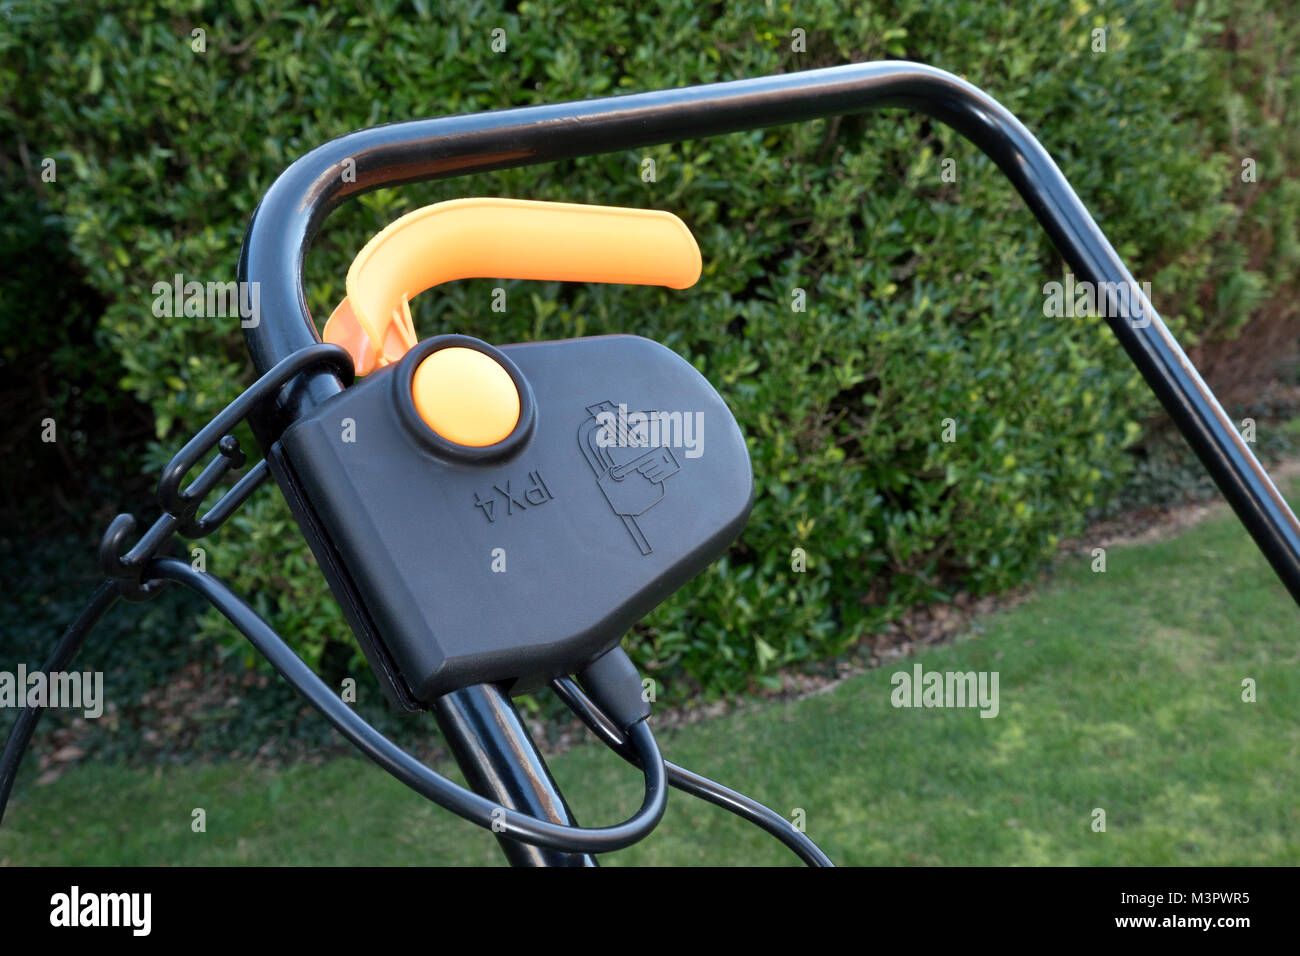 Safety switch on electrical garden power mower - Stock Image